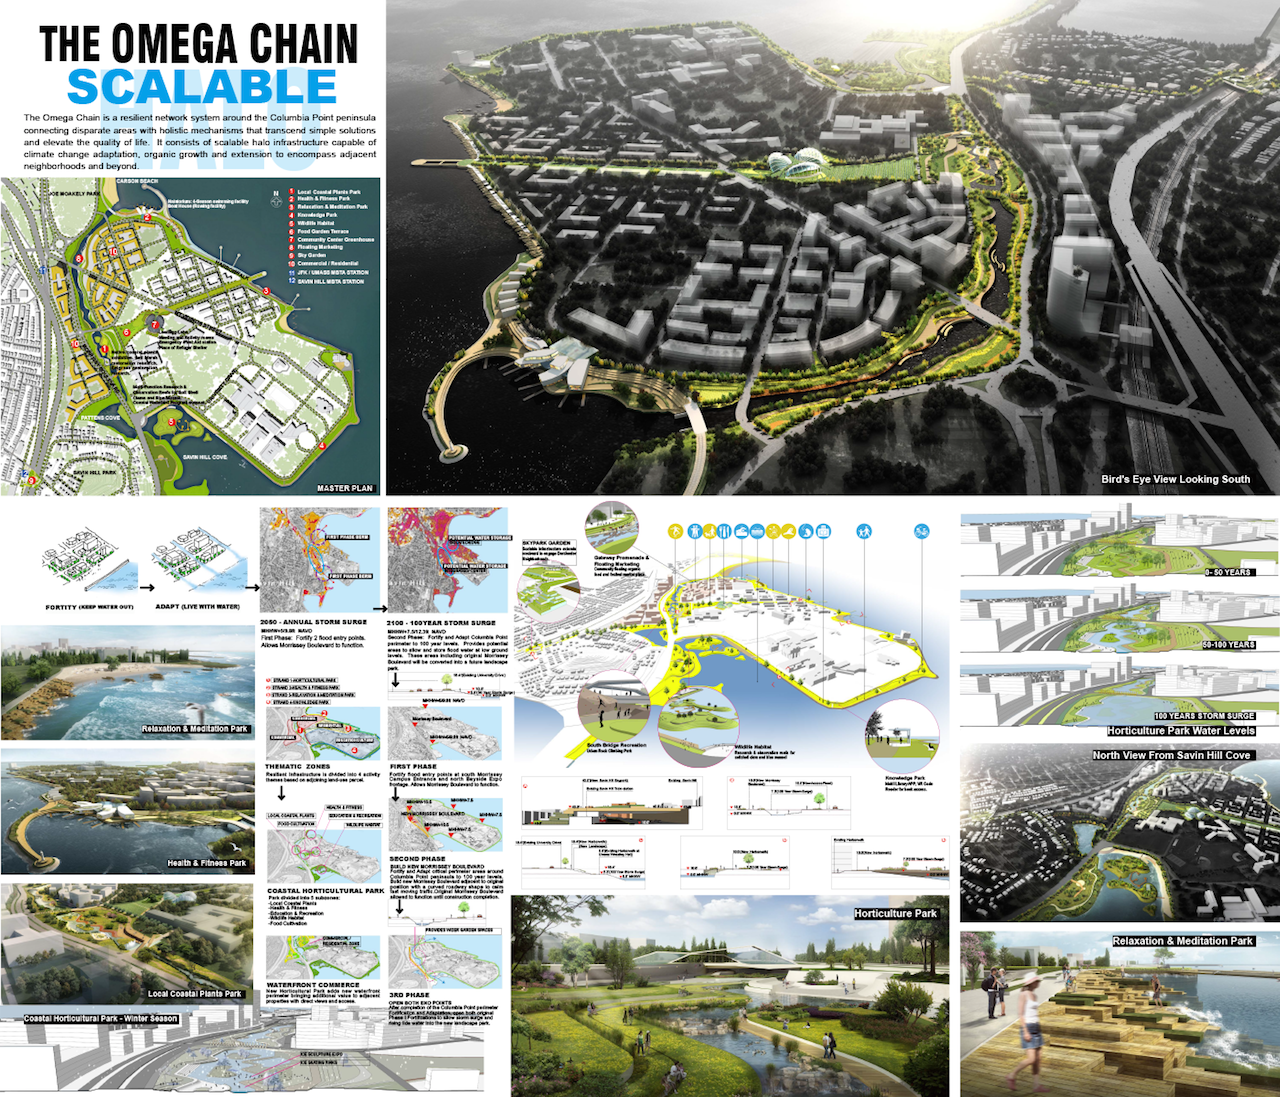 """""""The Omega Chain"""" led by Howard & Cavaluzzi Architects Int. LLC, Beijing Office – The Omega Chain would be a resilient network system around the Columbia Point peninsula that connects disparate areas with holistic mechanisms that transcend simple solutions and elevate quality of life for residents. It contemplates gradually converting the existing Morrissey Boulevard into a landscaped park and constructing a new elevated and curved roadway adjacent to the park to calm fast-moving traffic."""